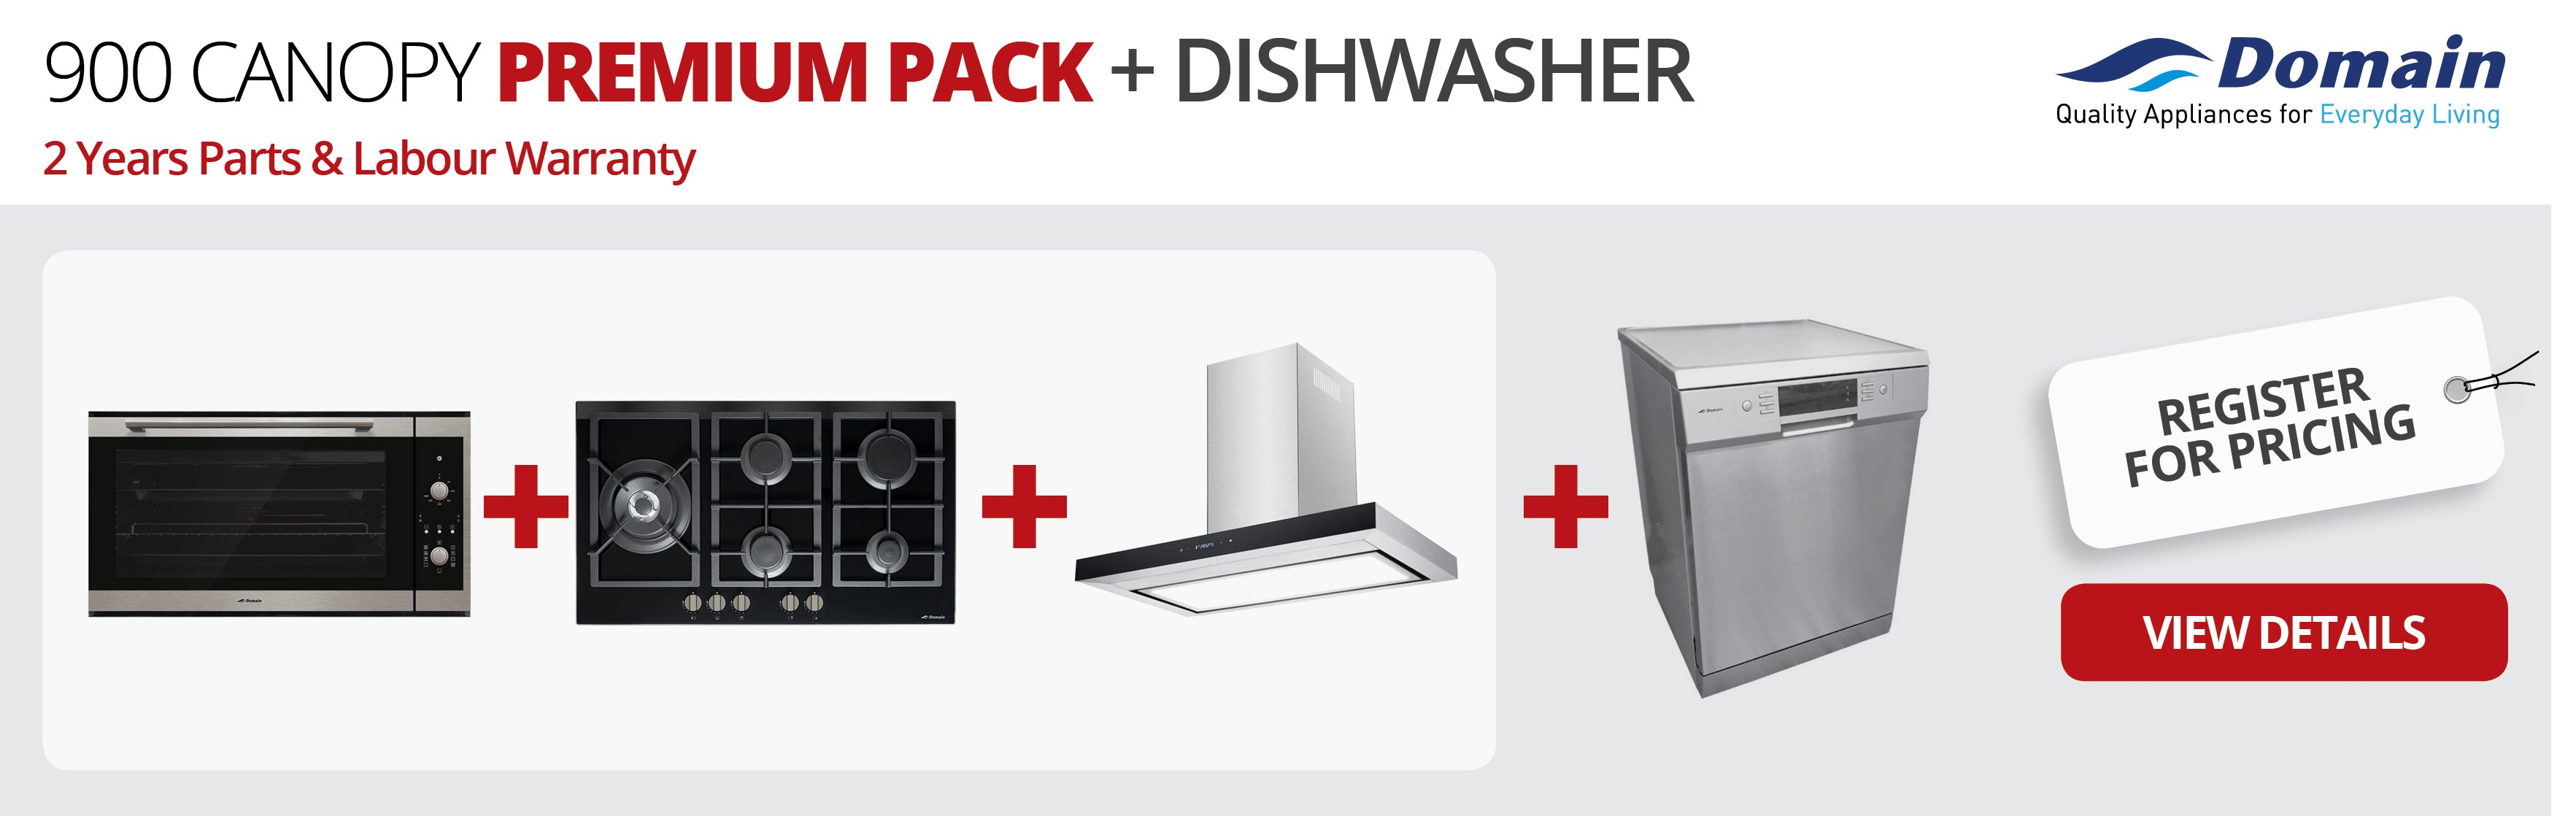 900 CANOPY Premium Pack + Dishwasher